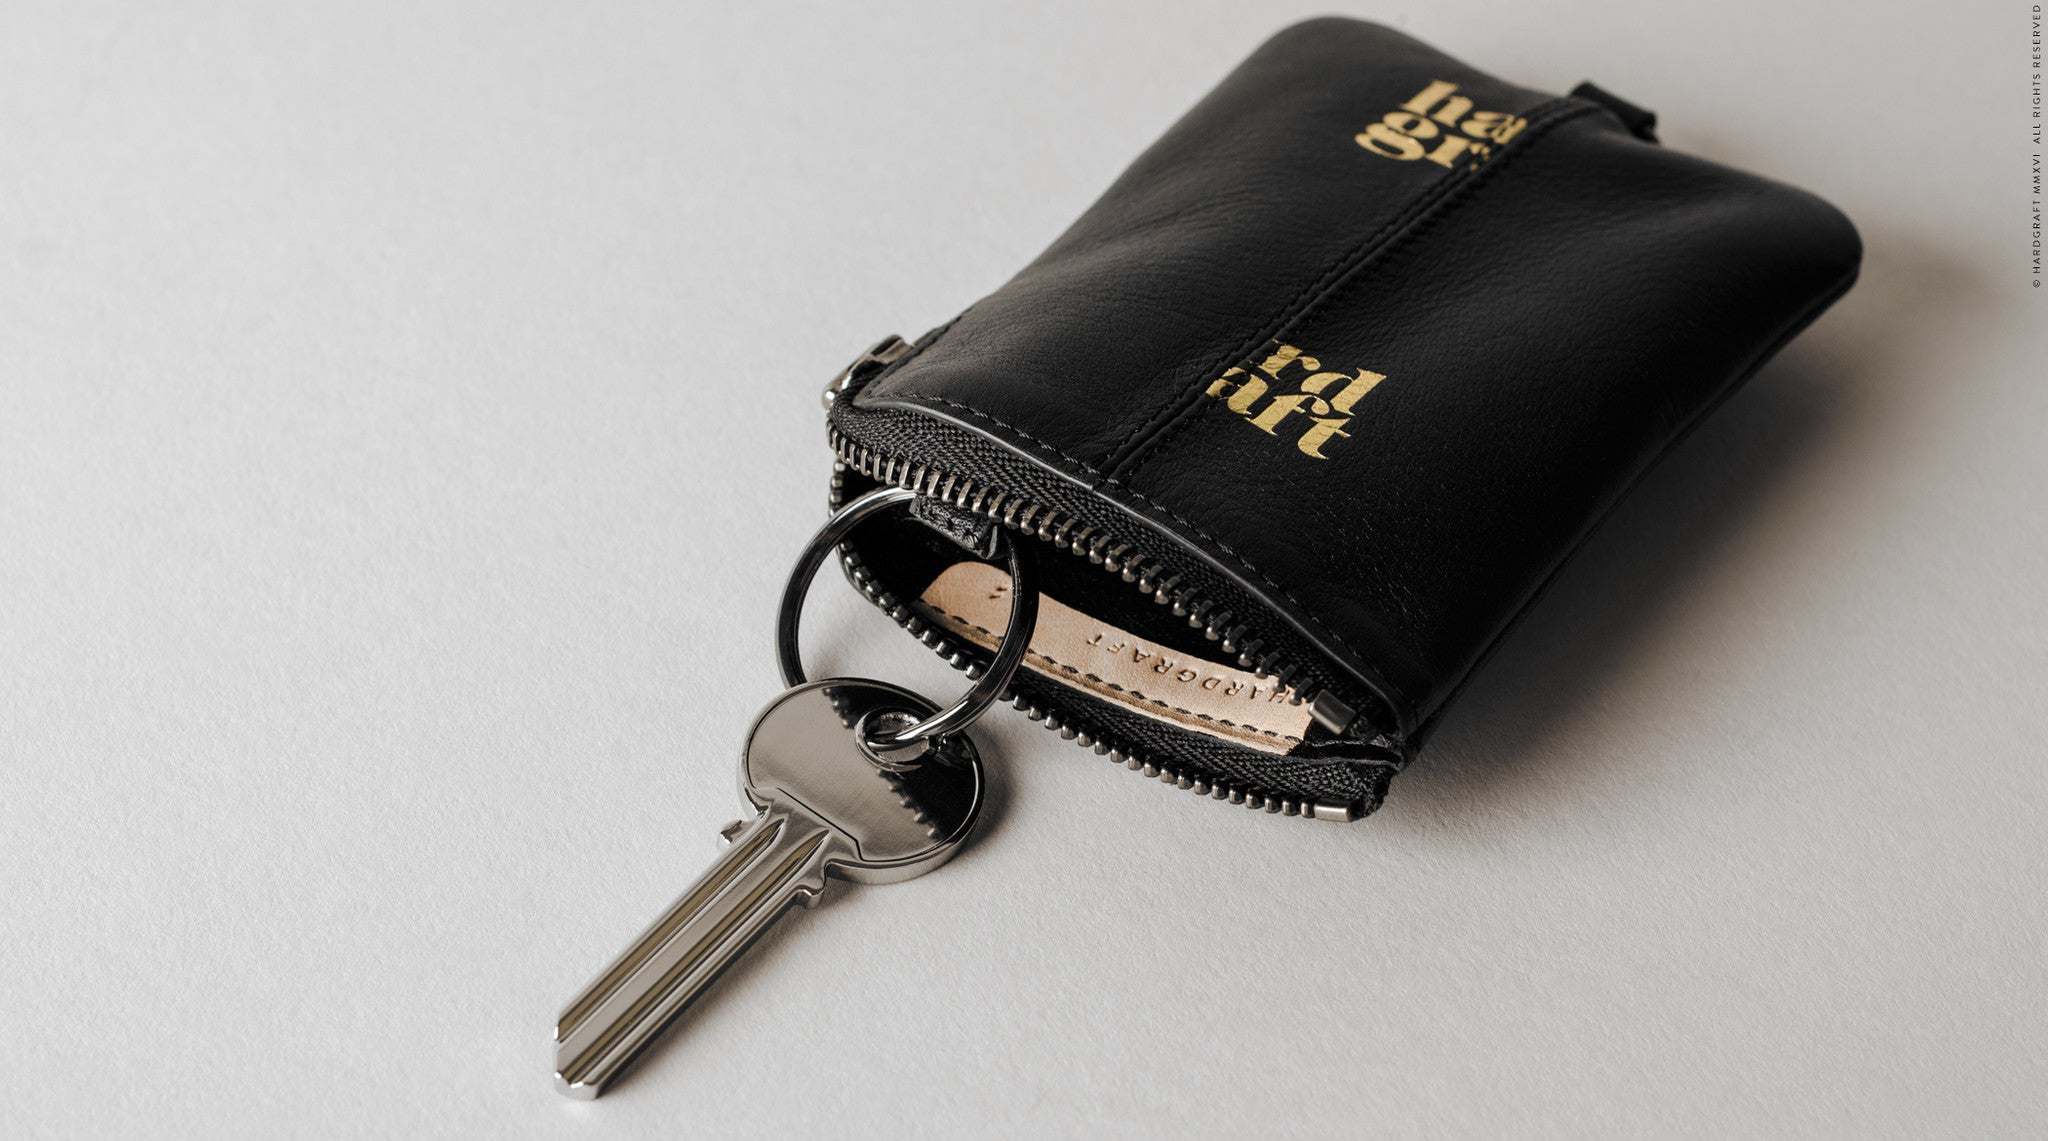 Zip Key . Black Oil